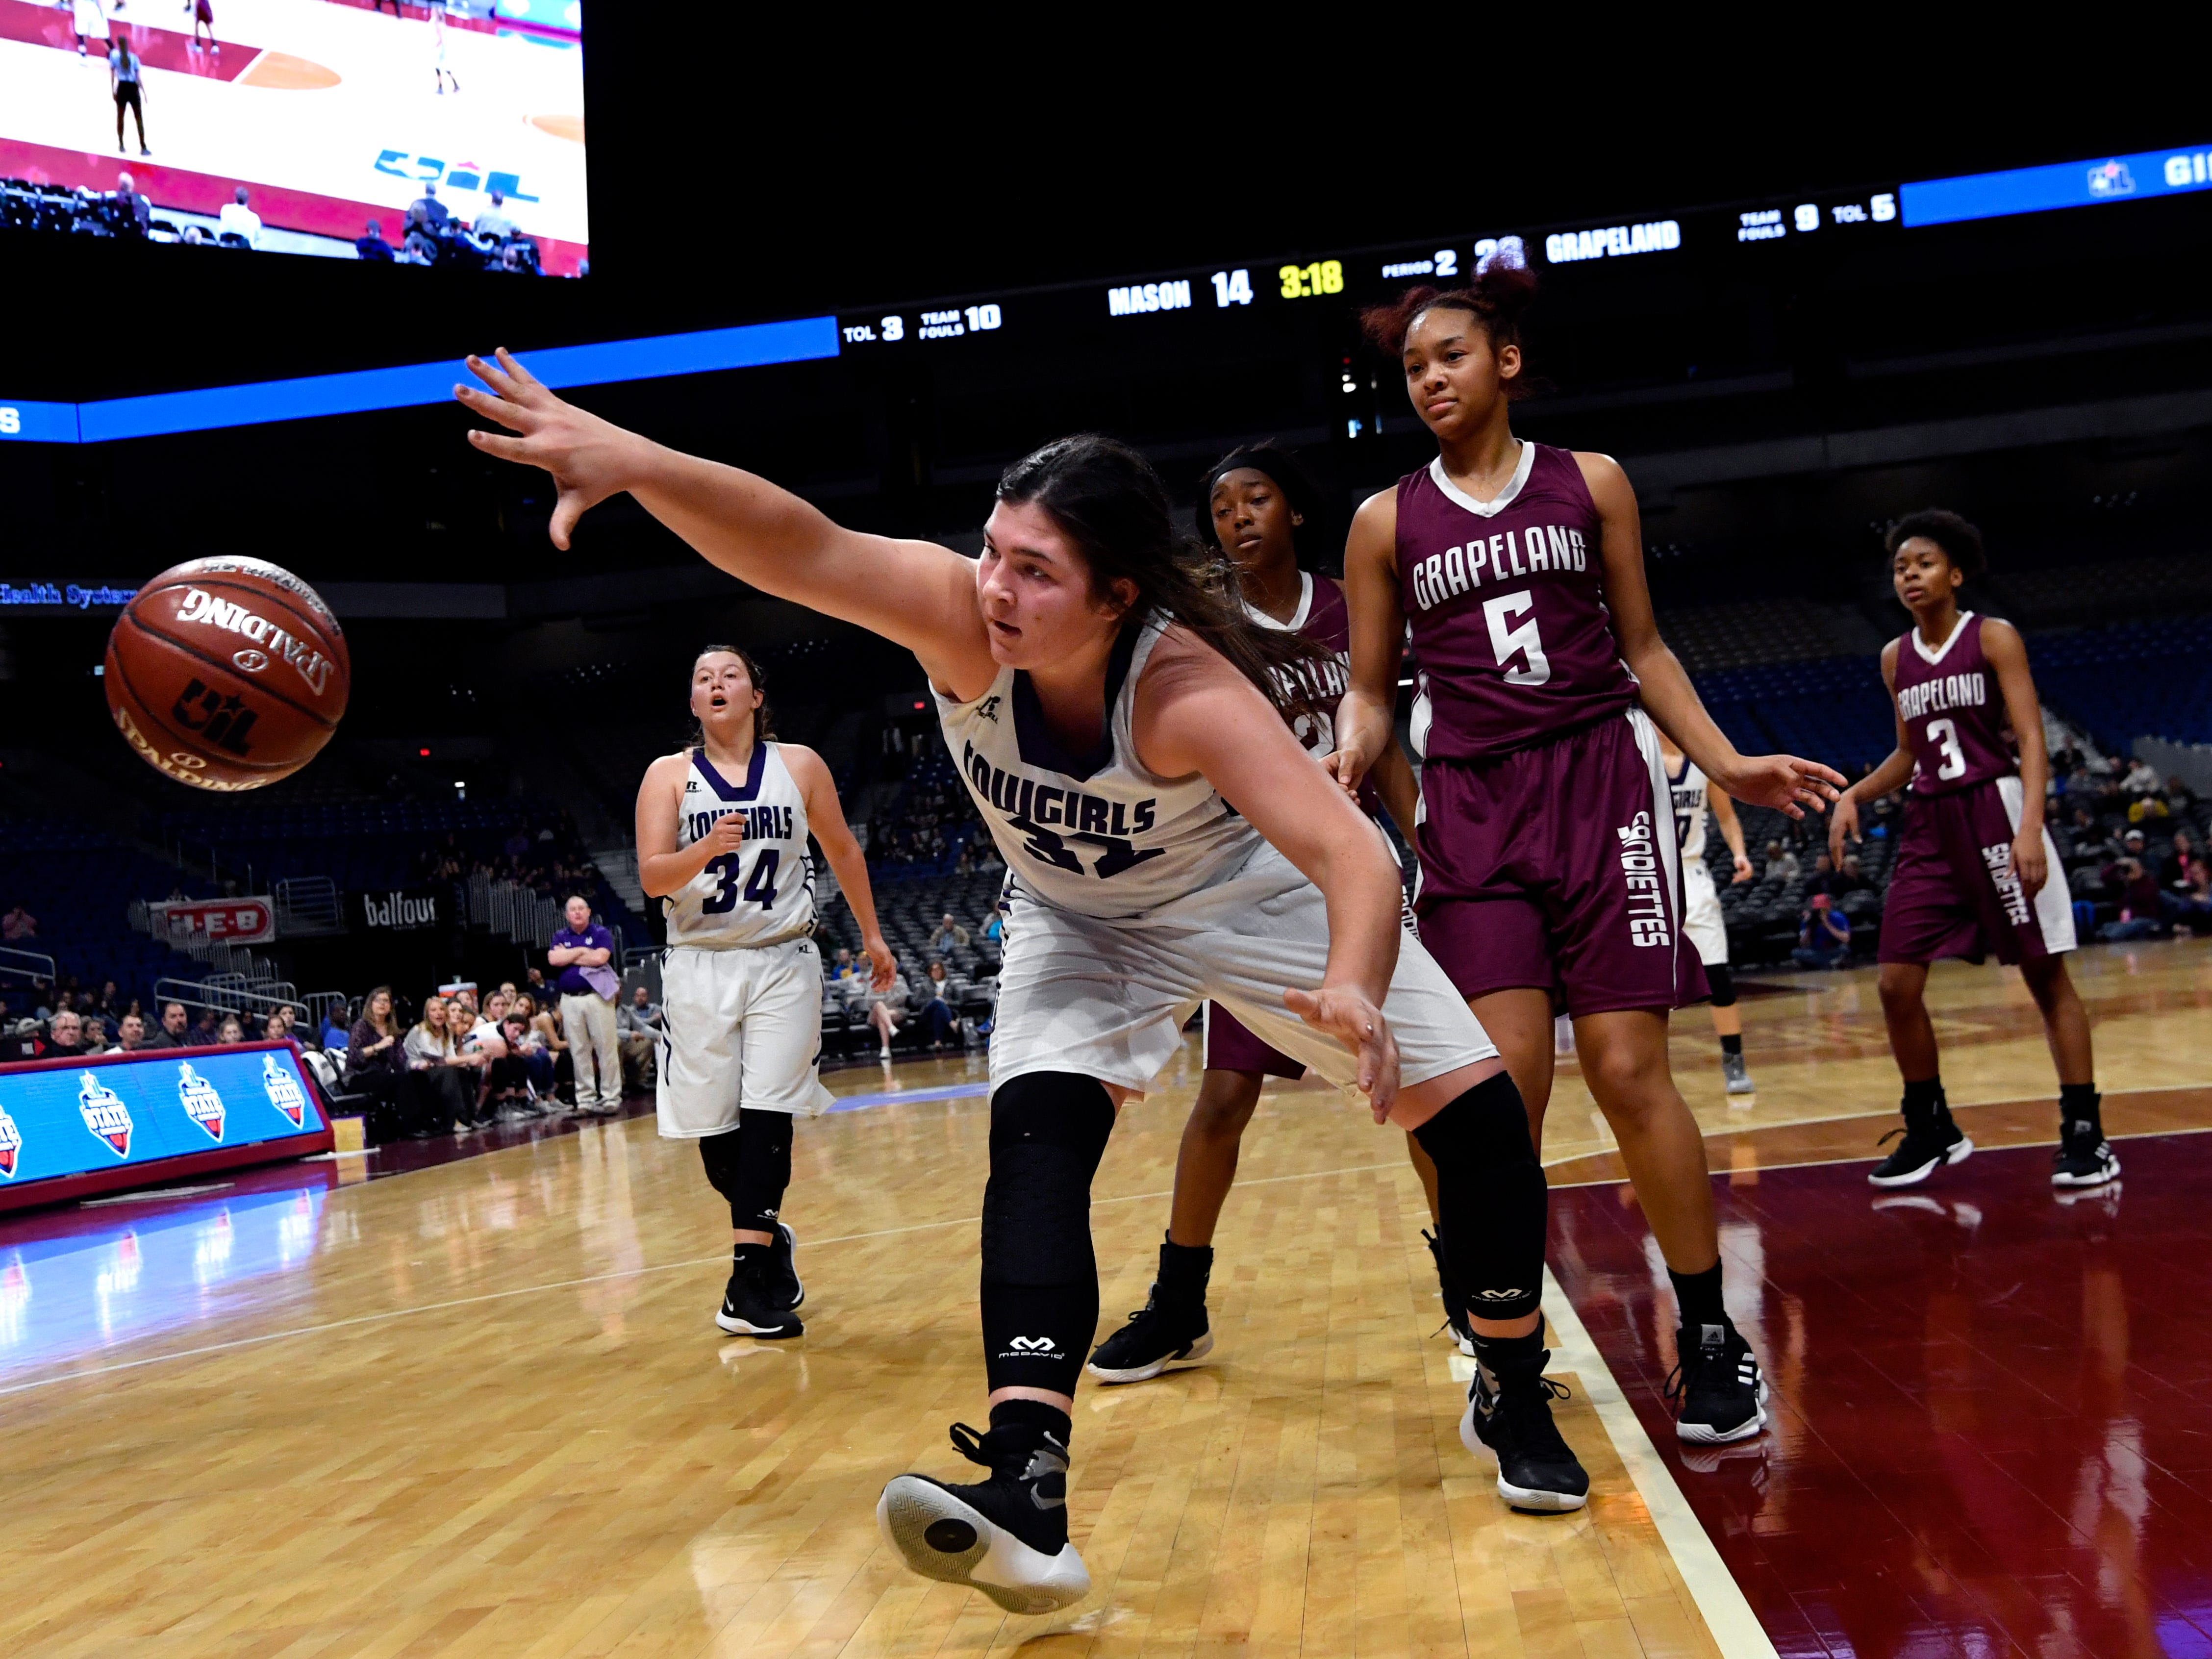 Mason center Ruby Magnus reaches for the ball after getting fouled by Grapeland during Friday's UIL Class 2A girls state basketball semifinal at the Alamodome in San Antonio March 1, 2019.